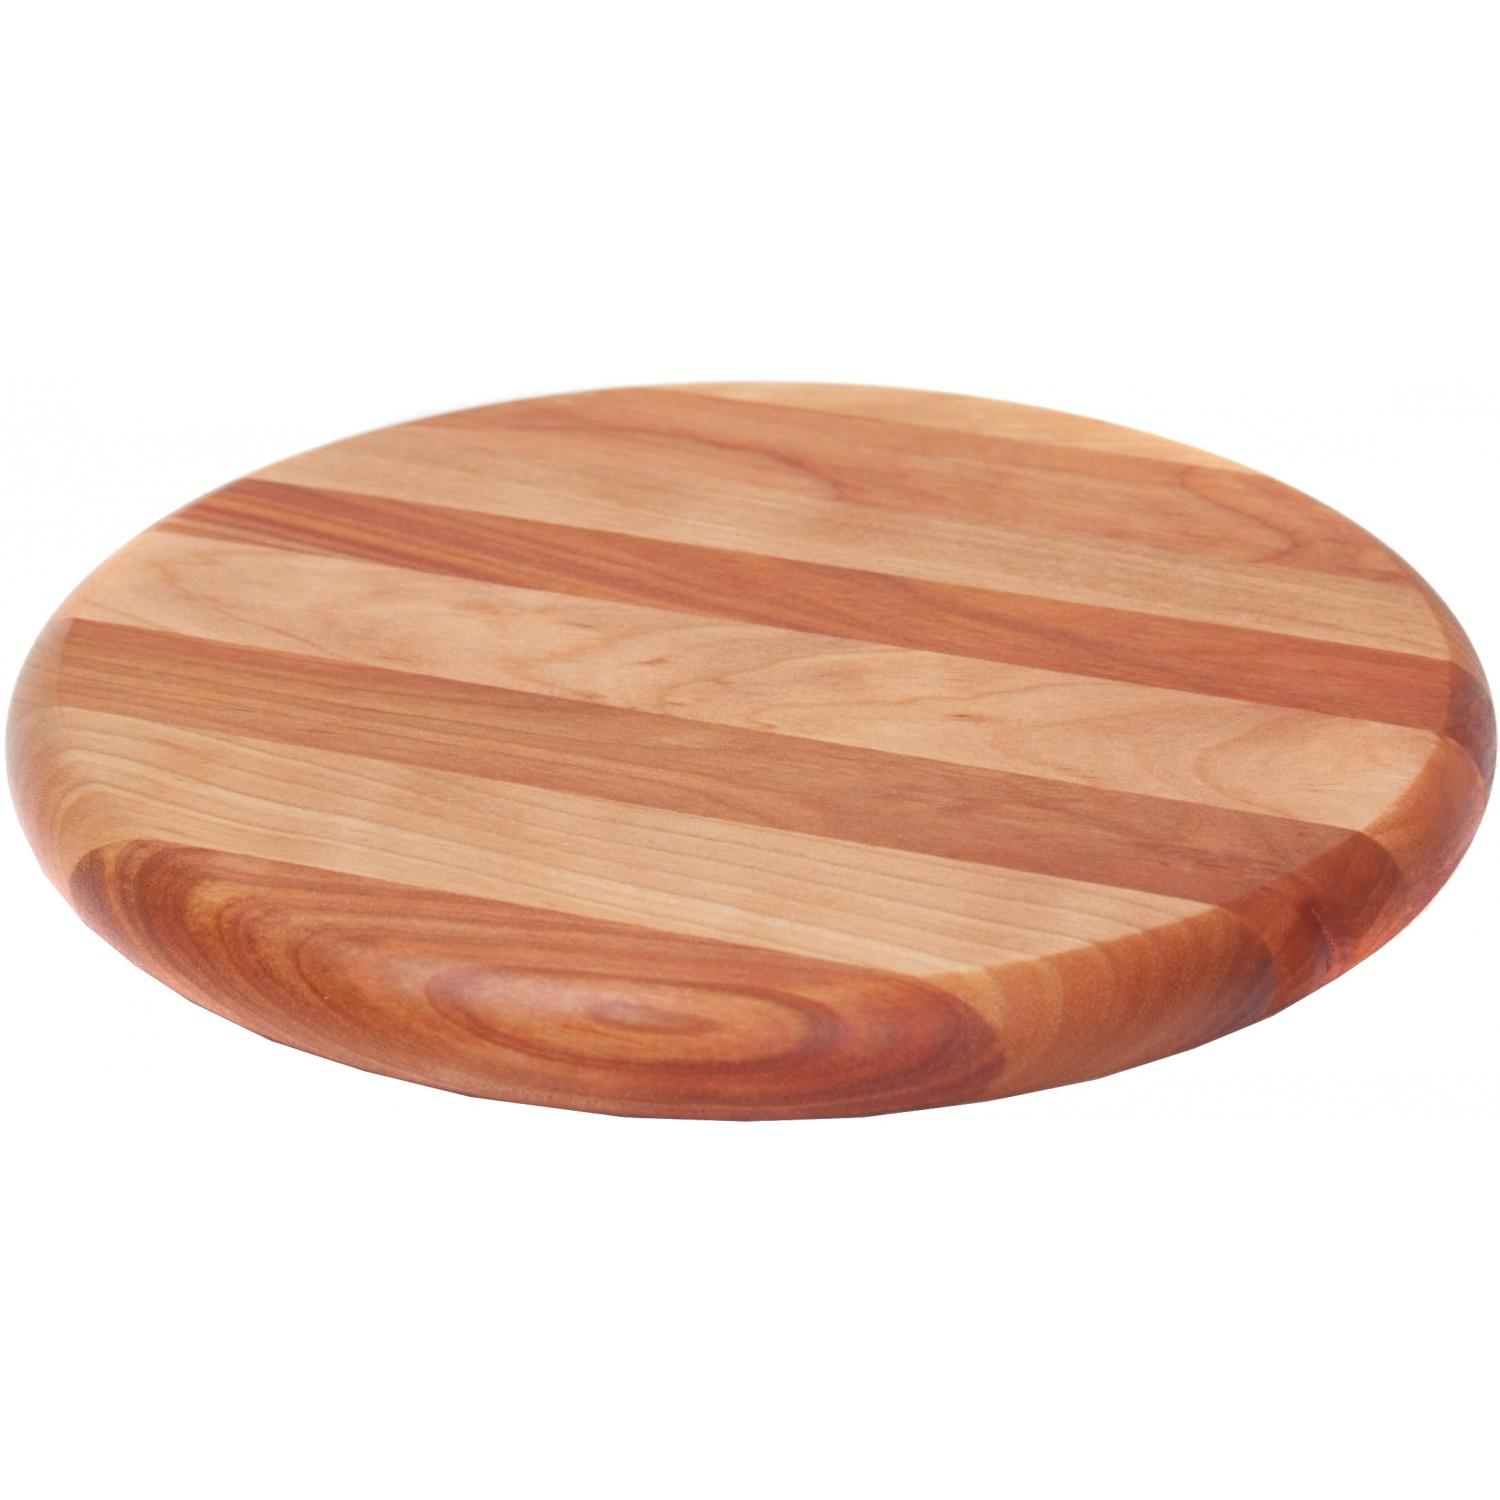 8 Inch Round Reversible Utility Board